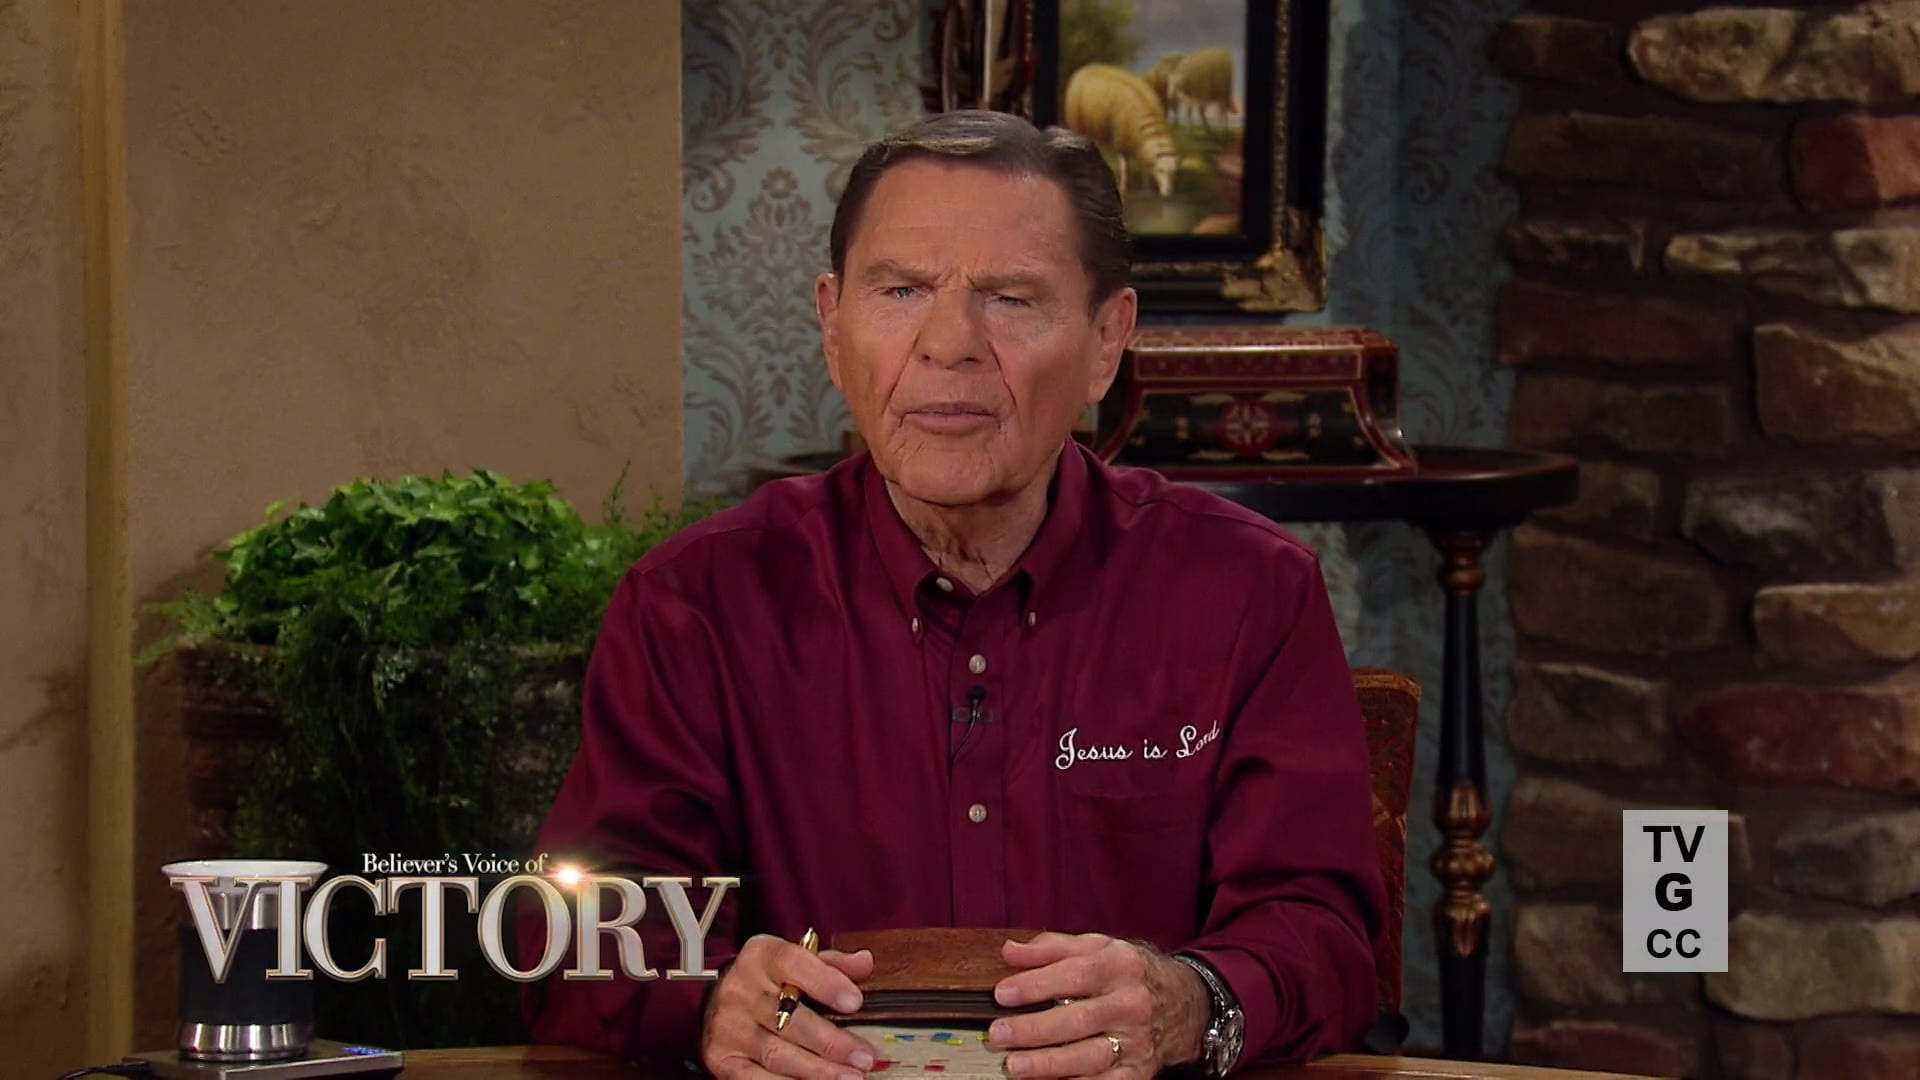 You CAN trust in your covenant! Watch Believer's Voice of Victory as Kenneth Copeland and Professor Greg Stephens teach you why trusting in the promise is walking by faith and not by sight. Understand how you are yoked with God through the blood of Jesus!